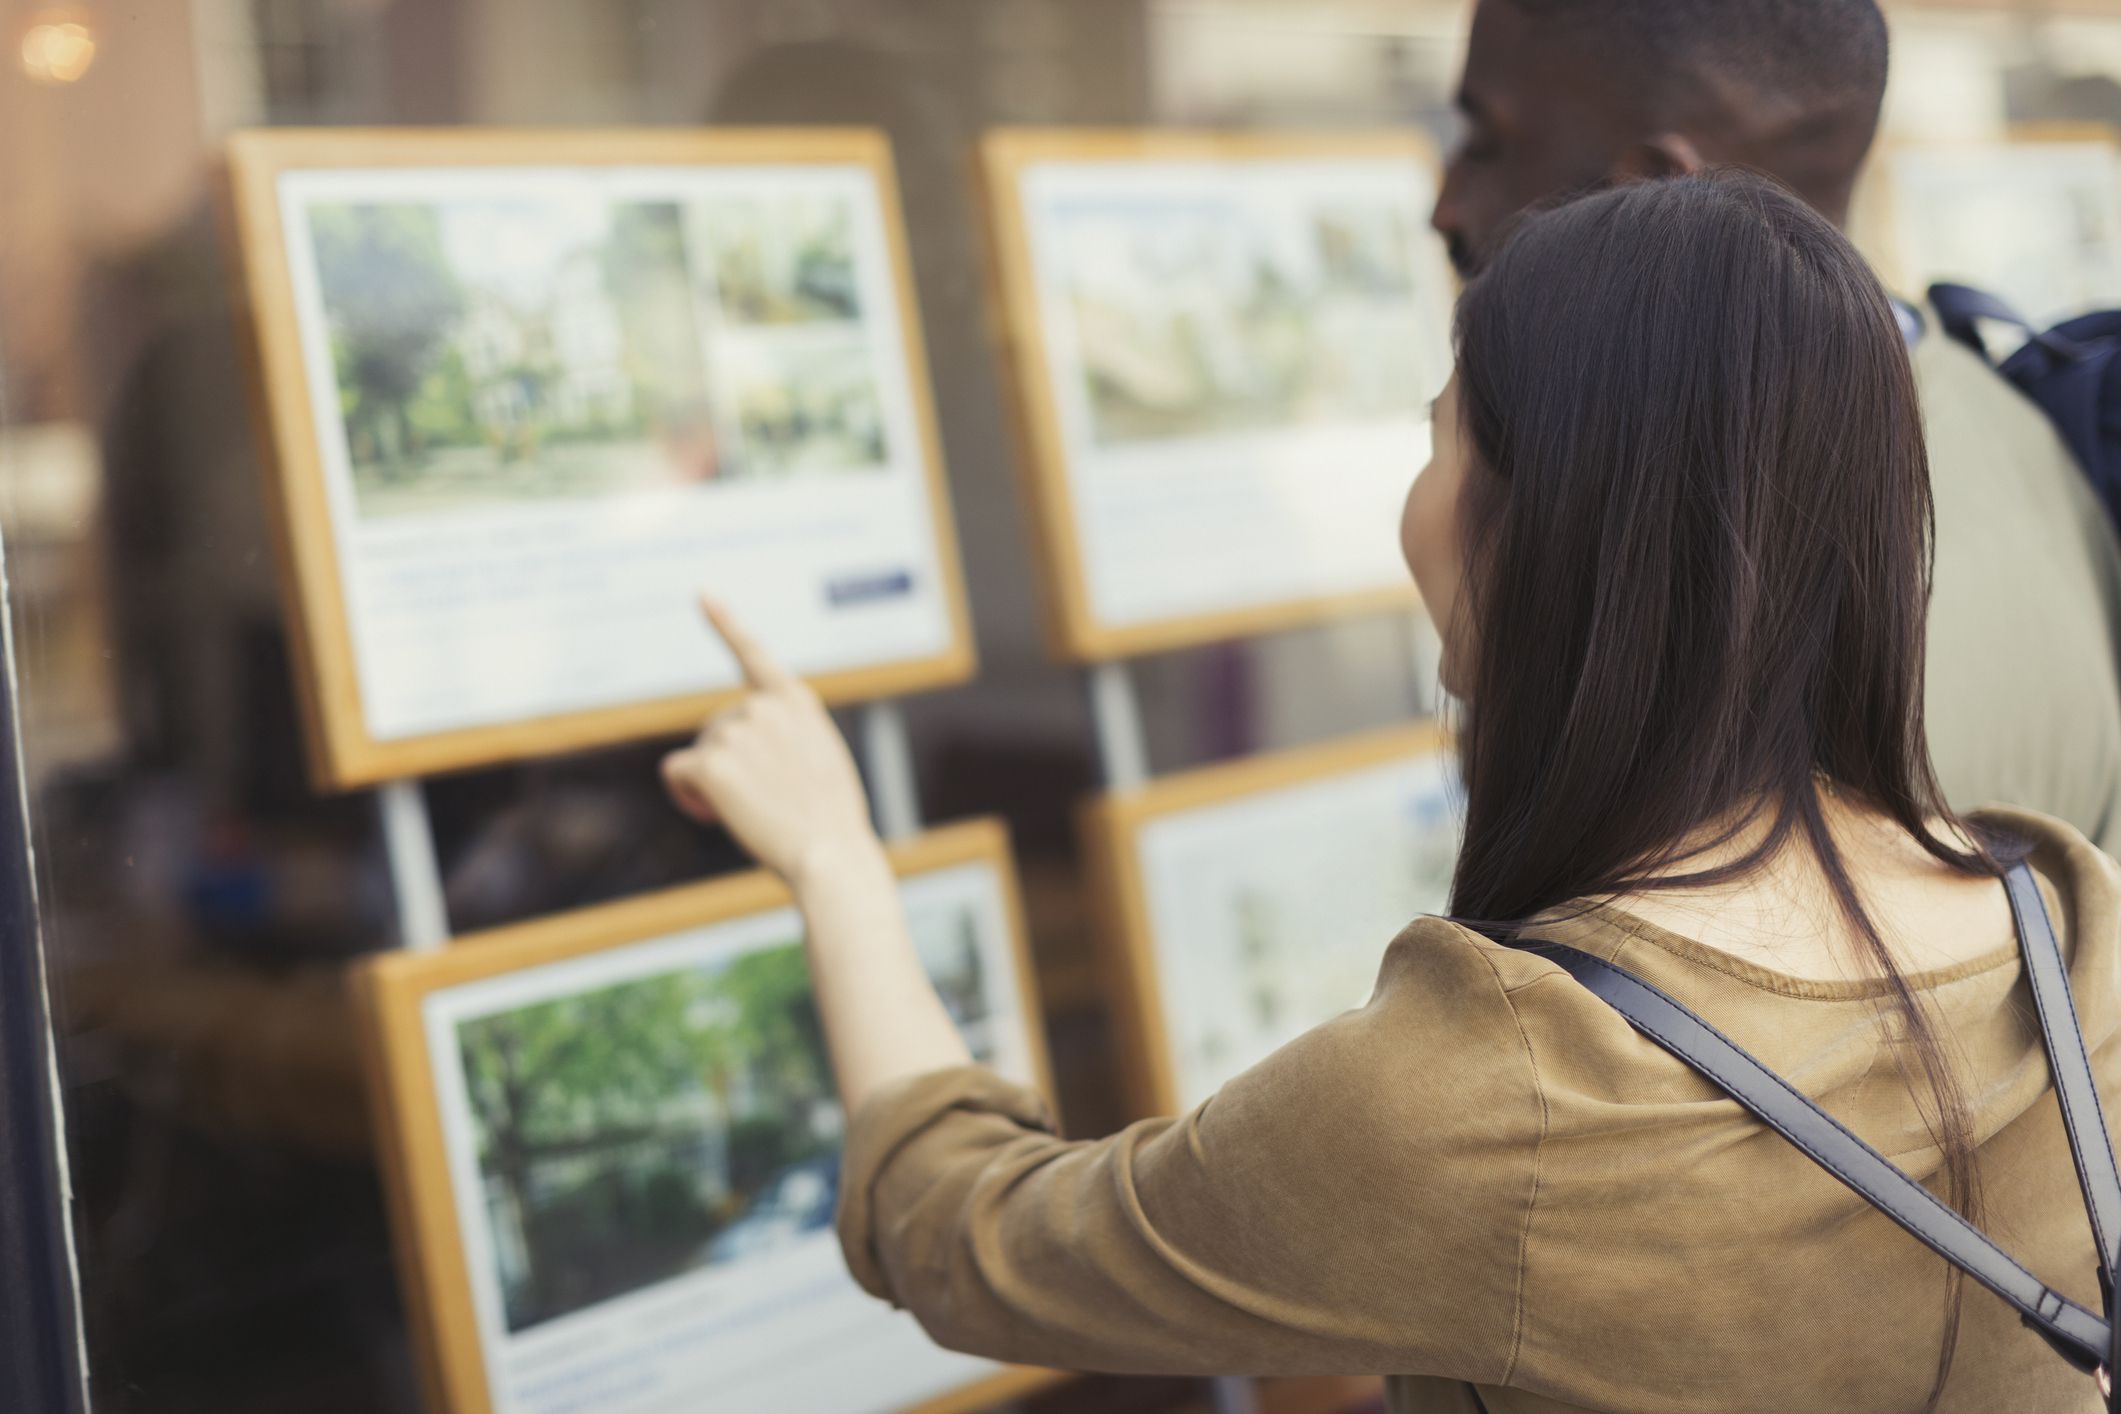 Getting a Mortgage? These Rules may Help Protect You